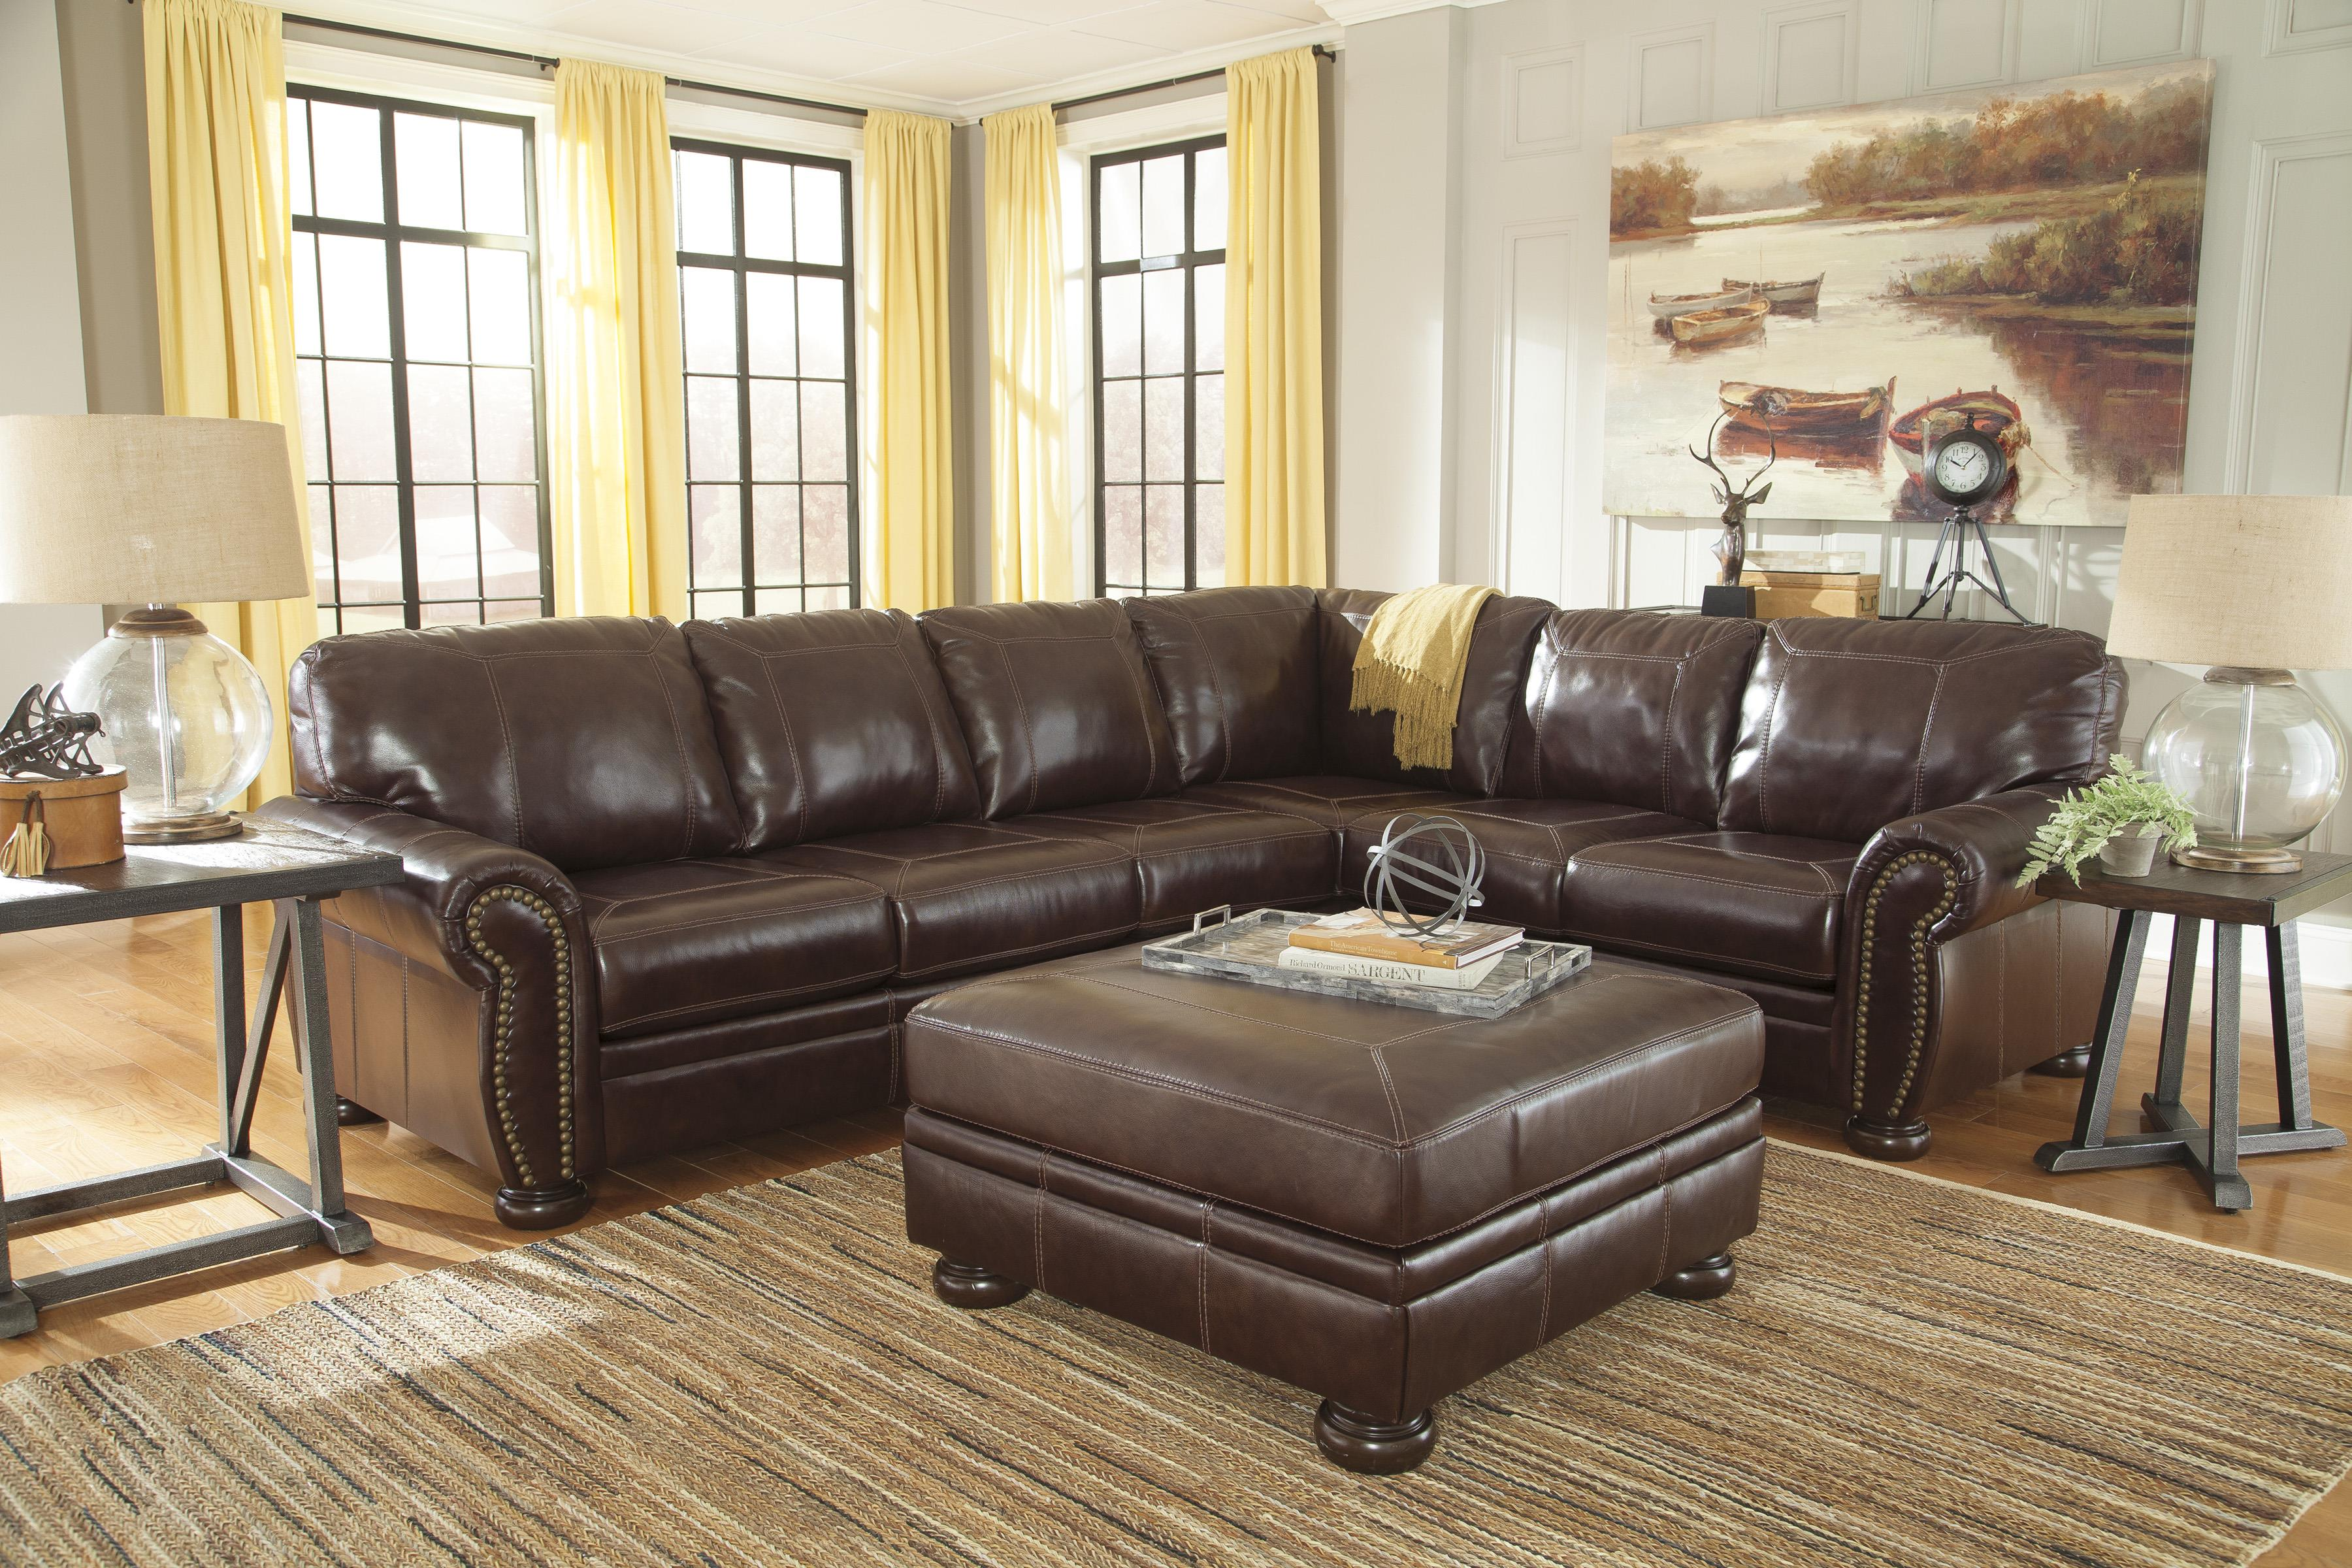 Square Leather Match Oversized Accent Ottoman with Bun Feet : leather sectional with nailhead trim - Sectionals, Sofas & Couches